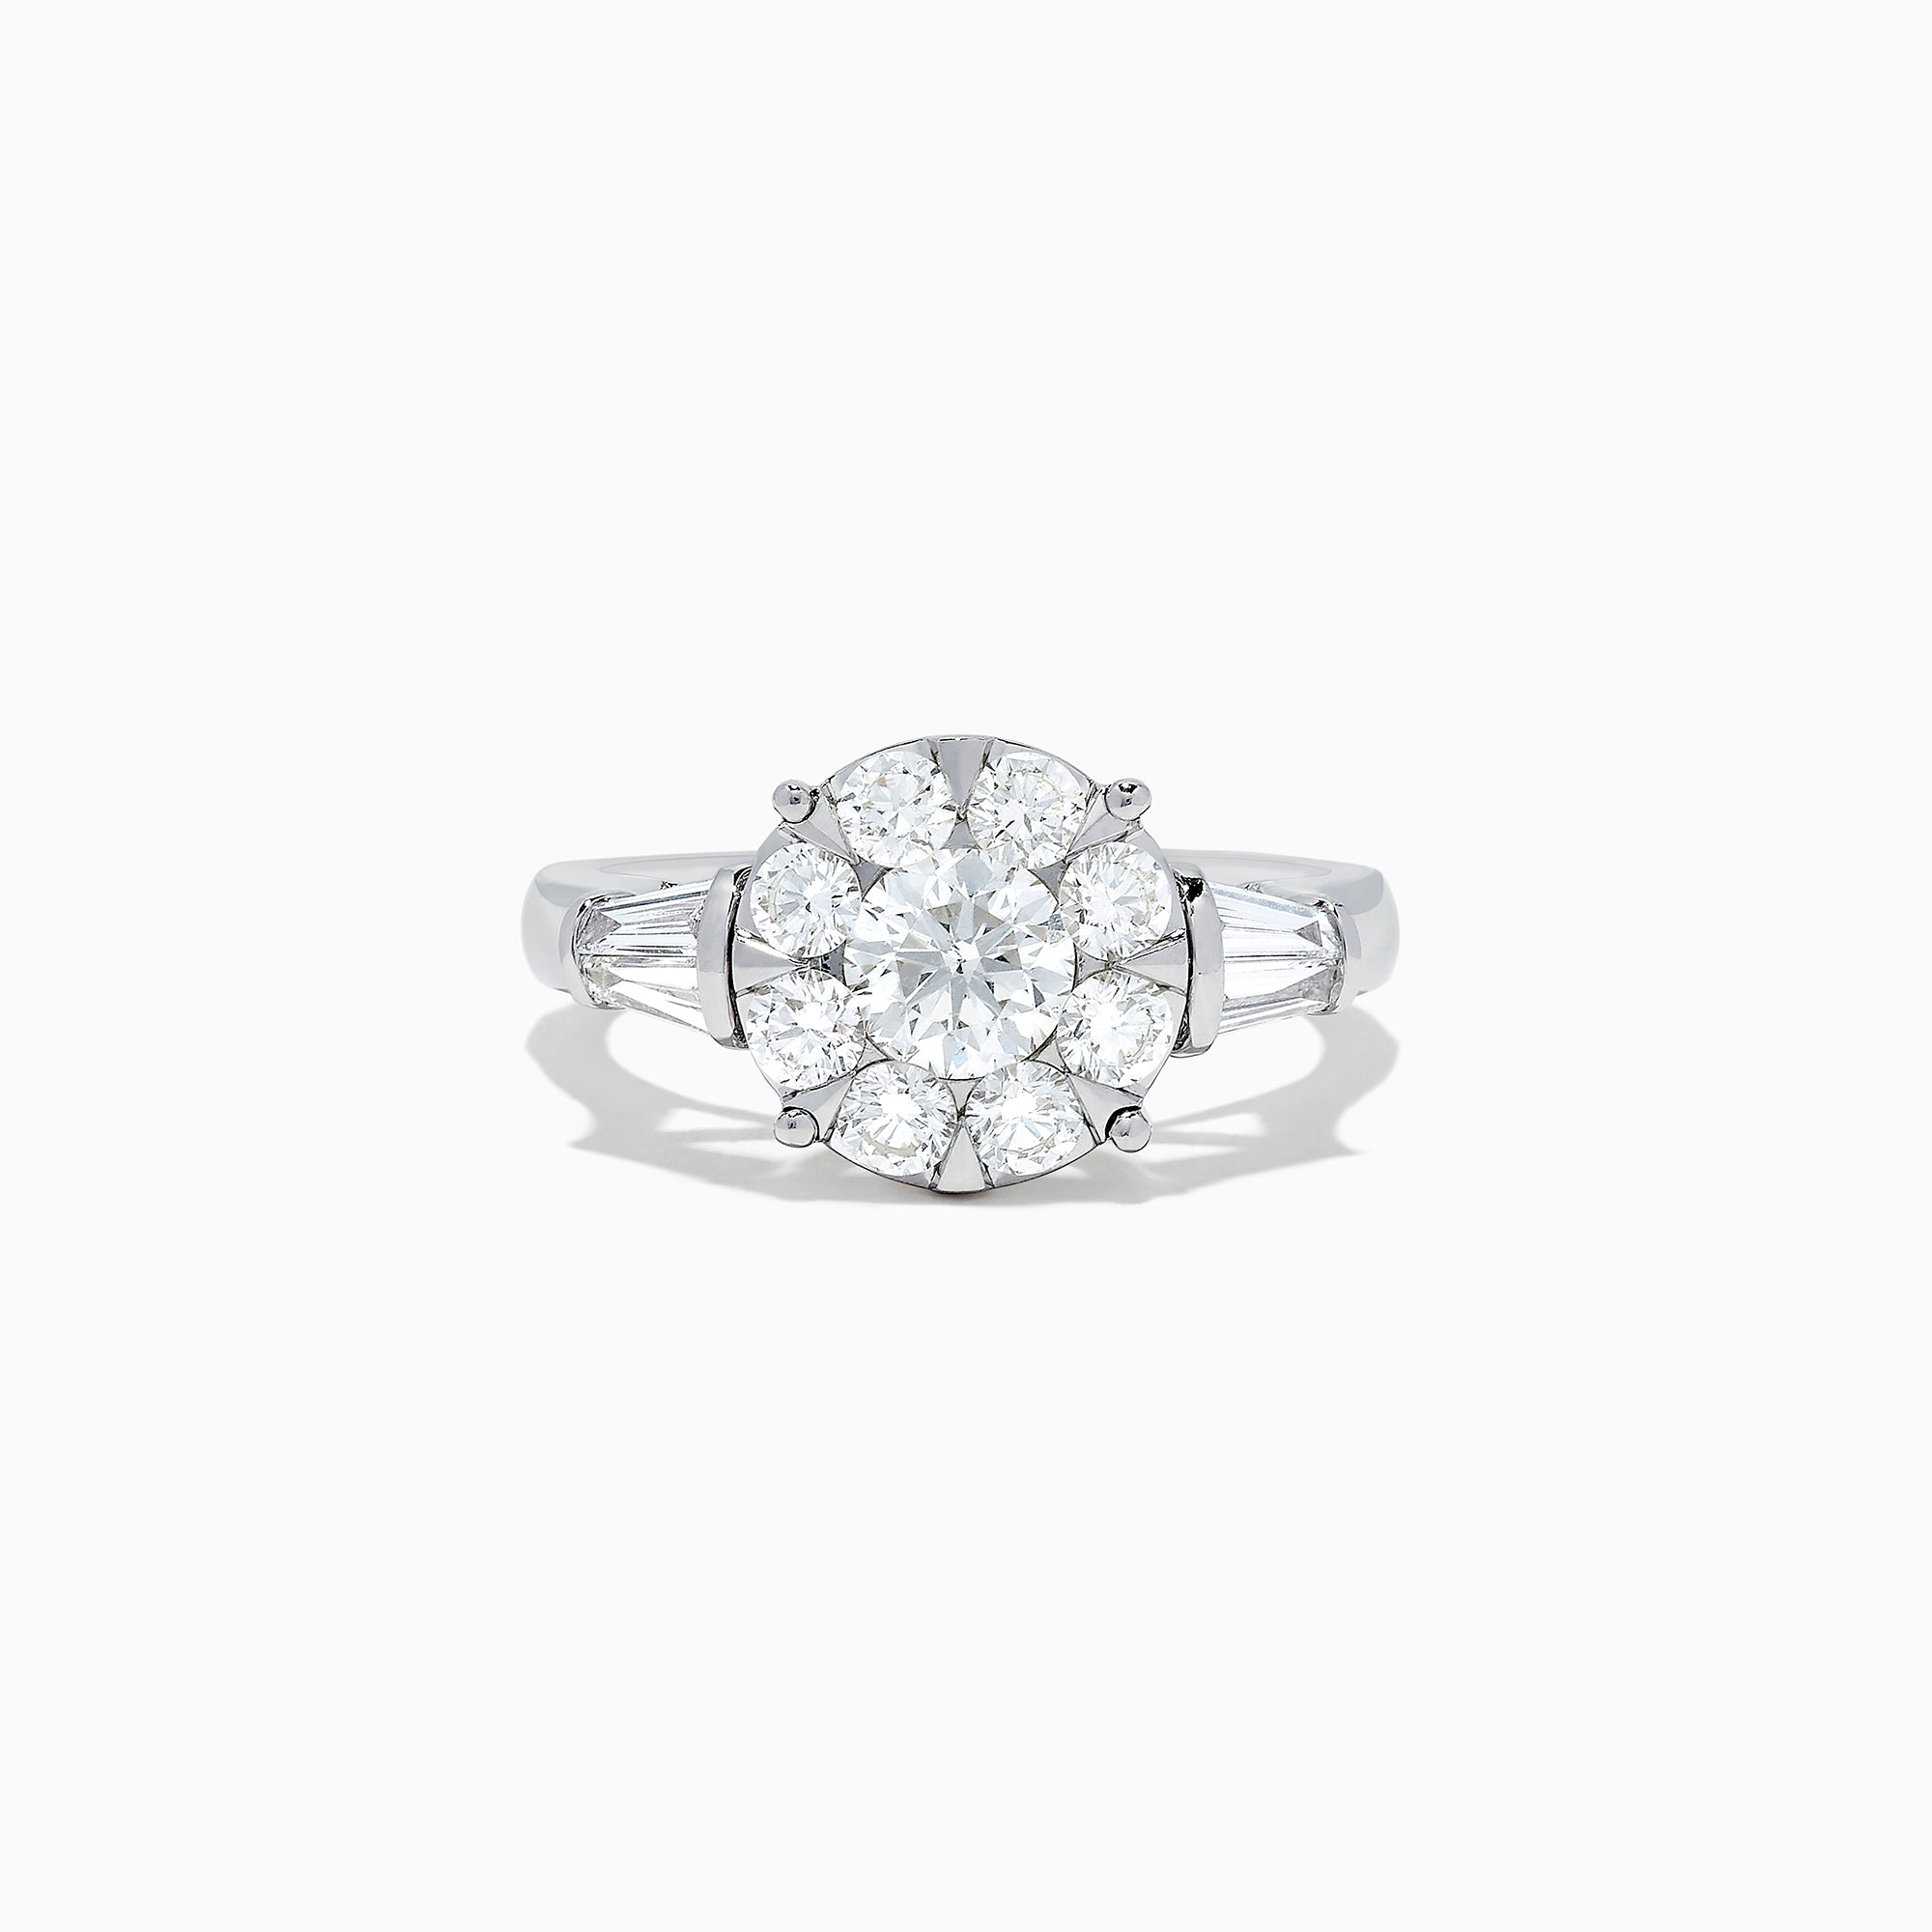 Effy Bouquet 14K White Gold Diamond Cluster Ring, 1.71 TCW